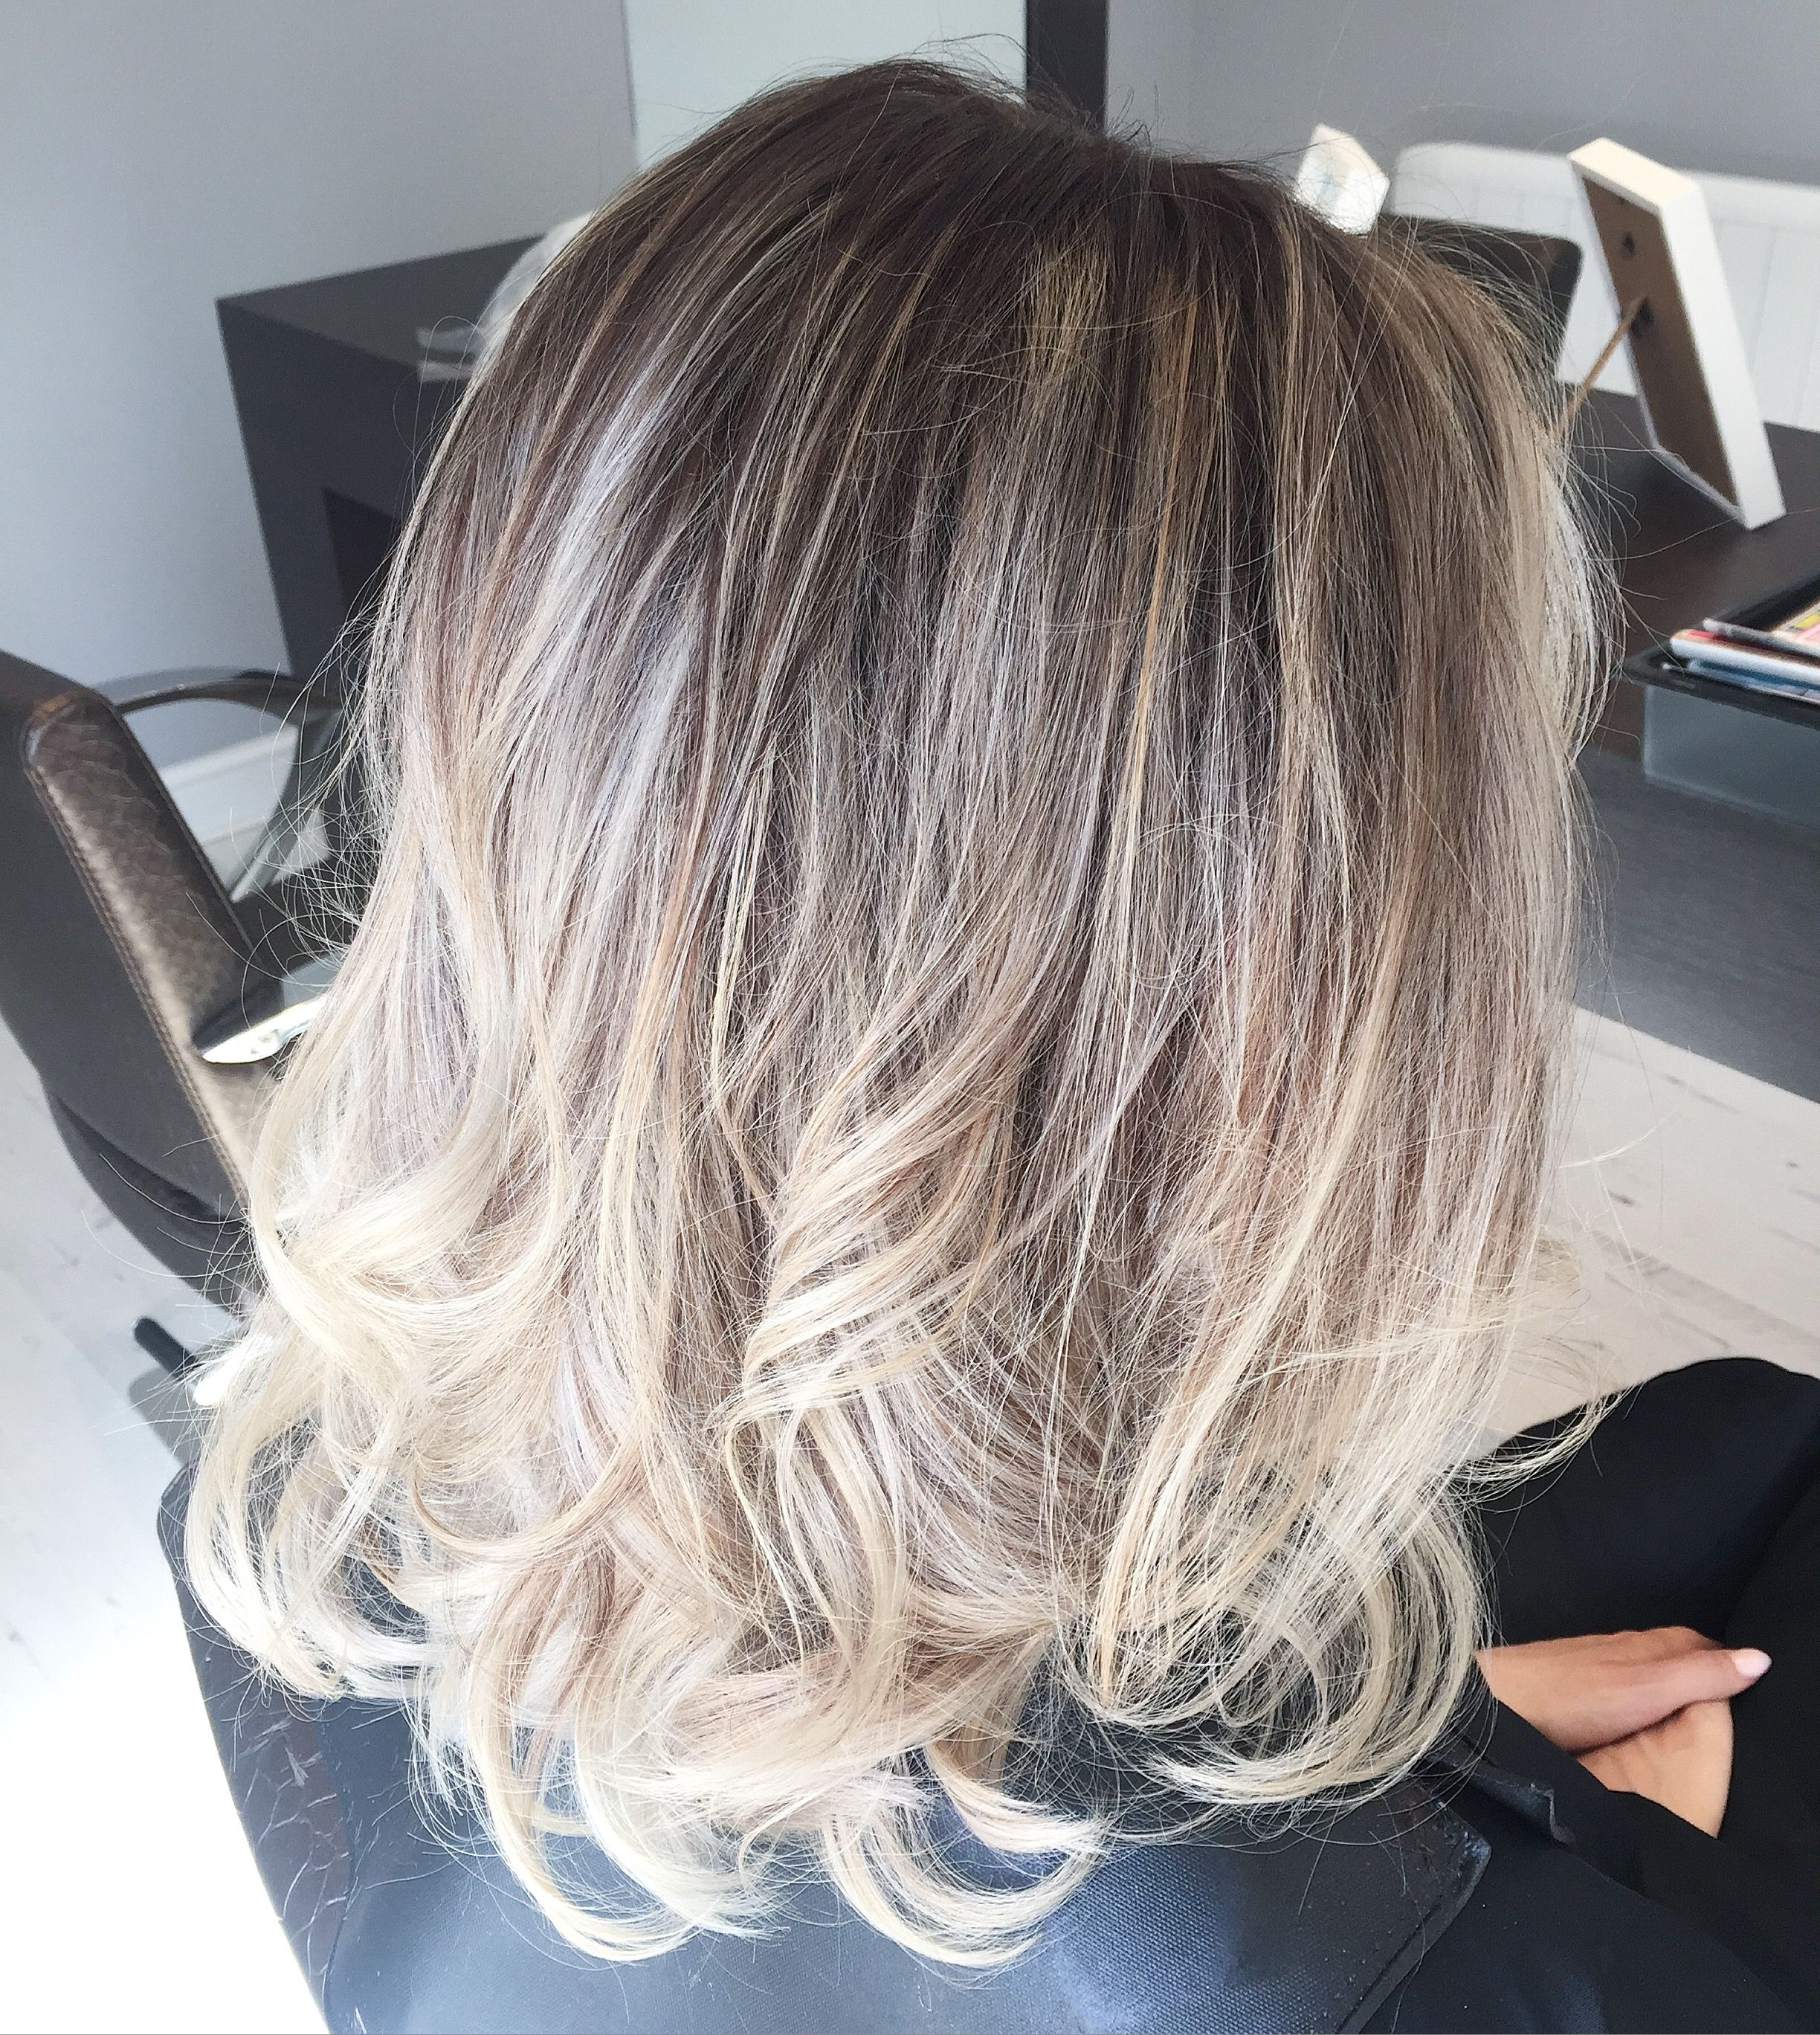 Fresh Ash Blonde with Intentional regrowth From dark to light